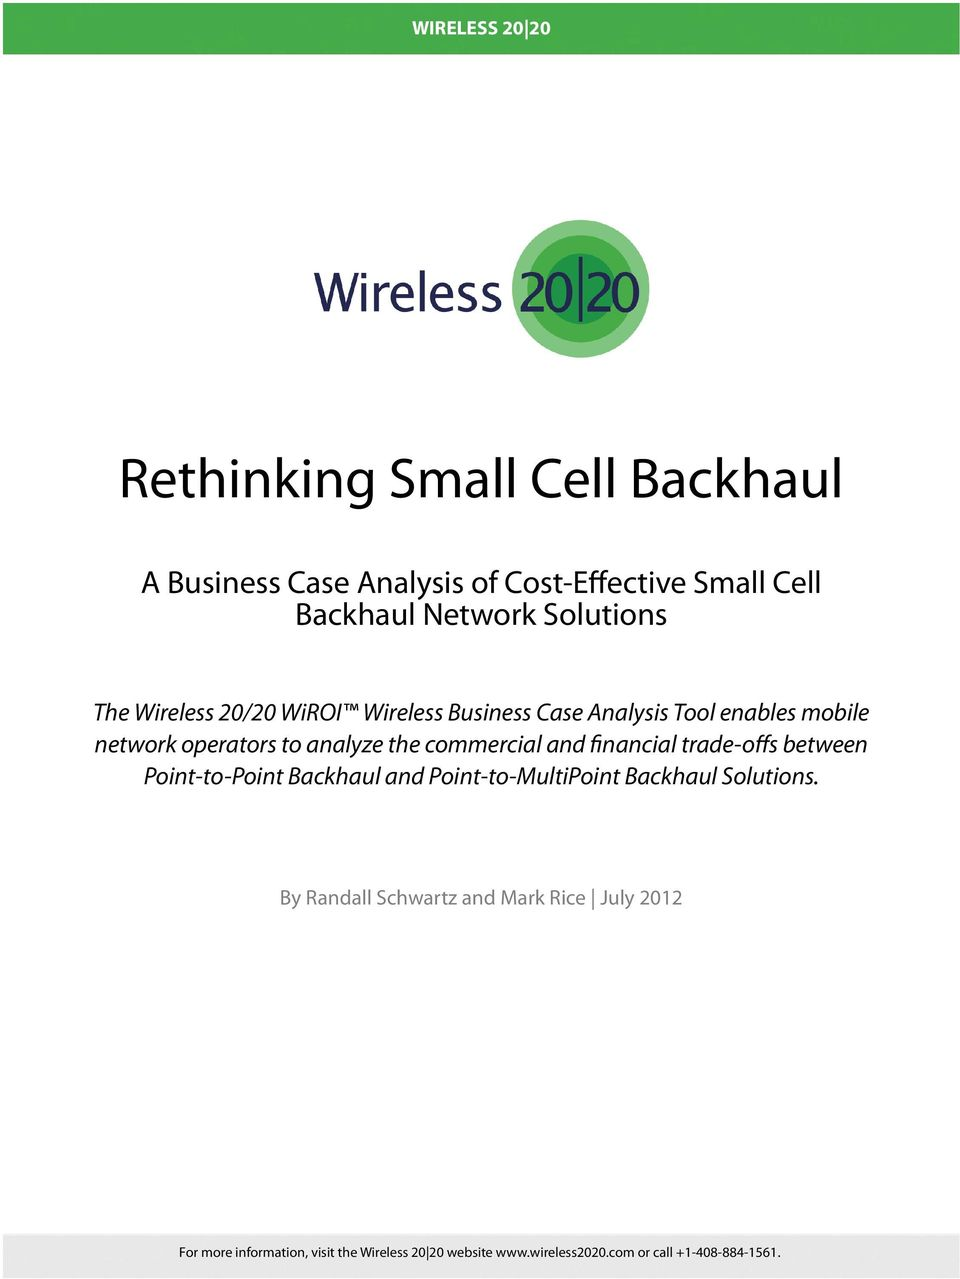 commercial and financial trade-offs between Point-to-Point Backhaul and Point-to-MultiPoint Backhaul Solutions.